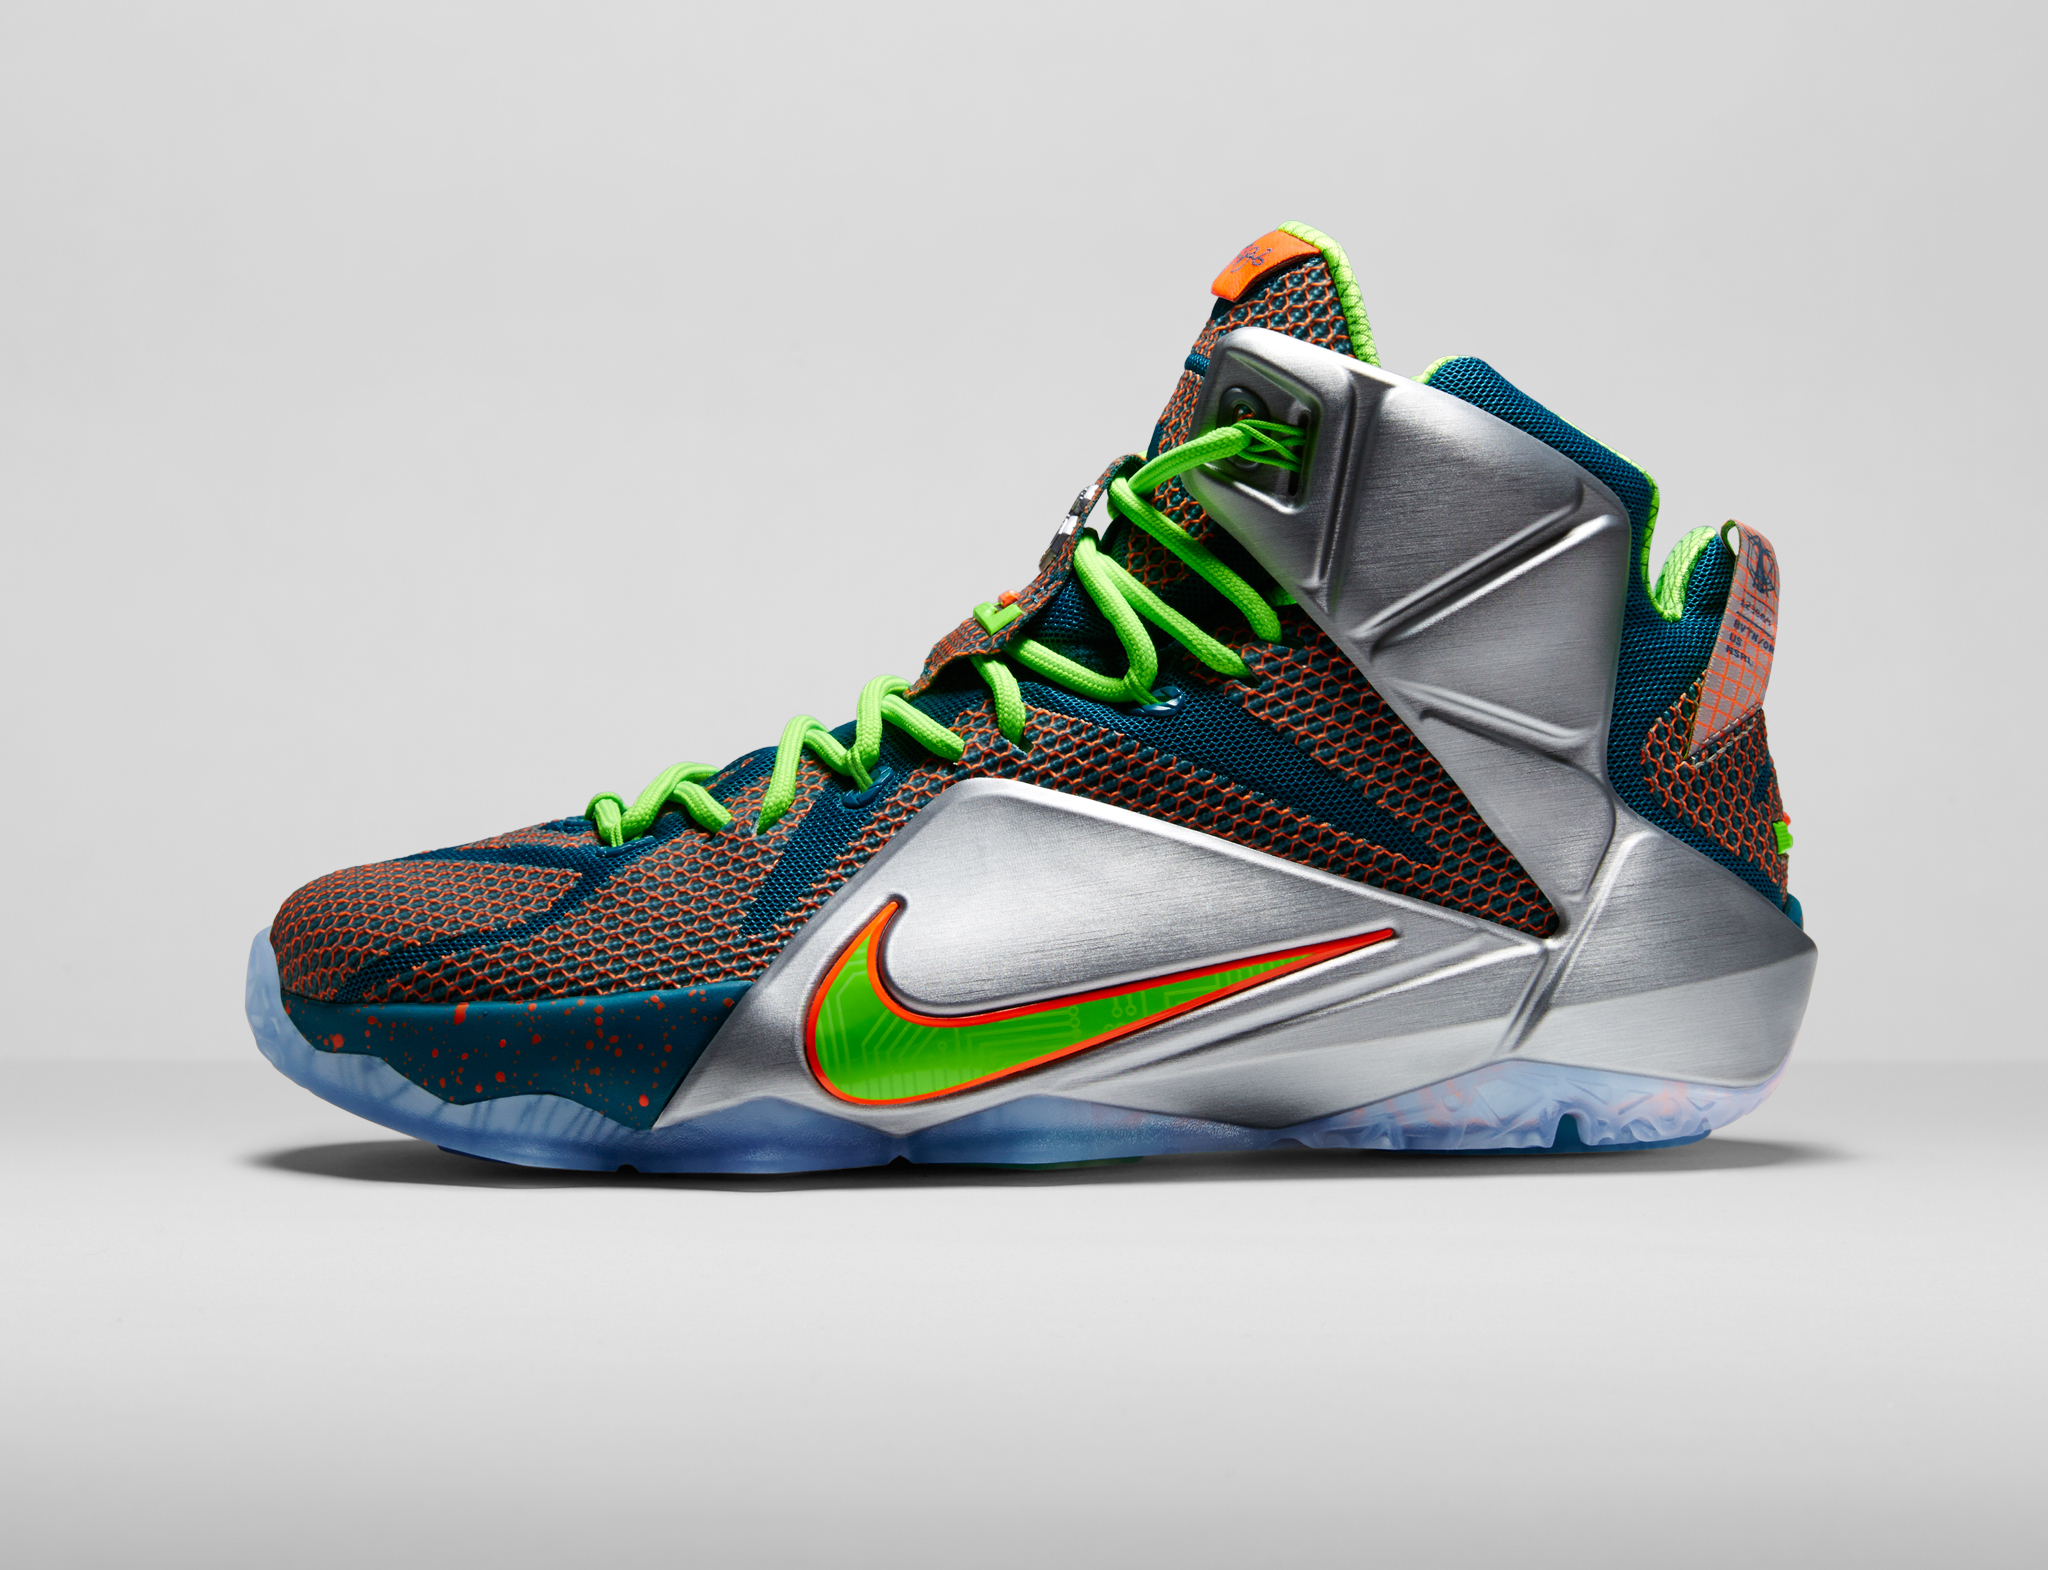 competitive price aae45 e60c0 6ce4a bdb33 ireland lebron 12 new colorways coming nike news 786c1 b56d4 ...